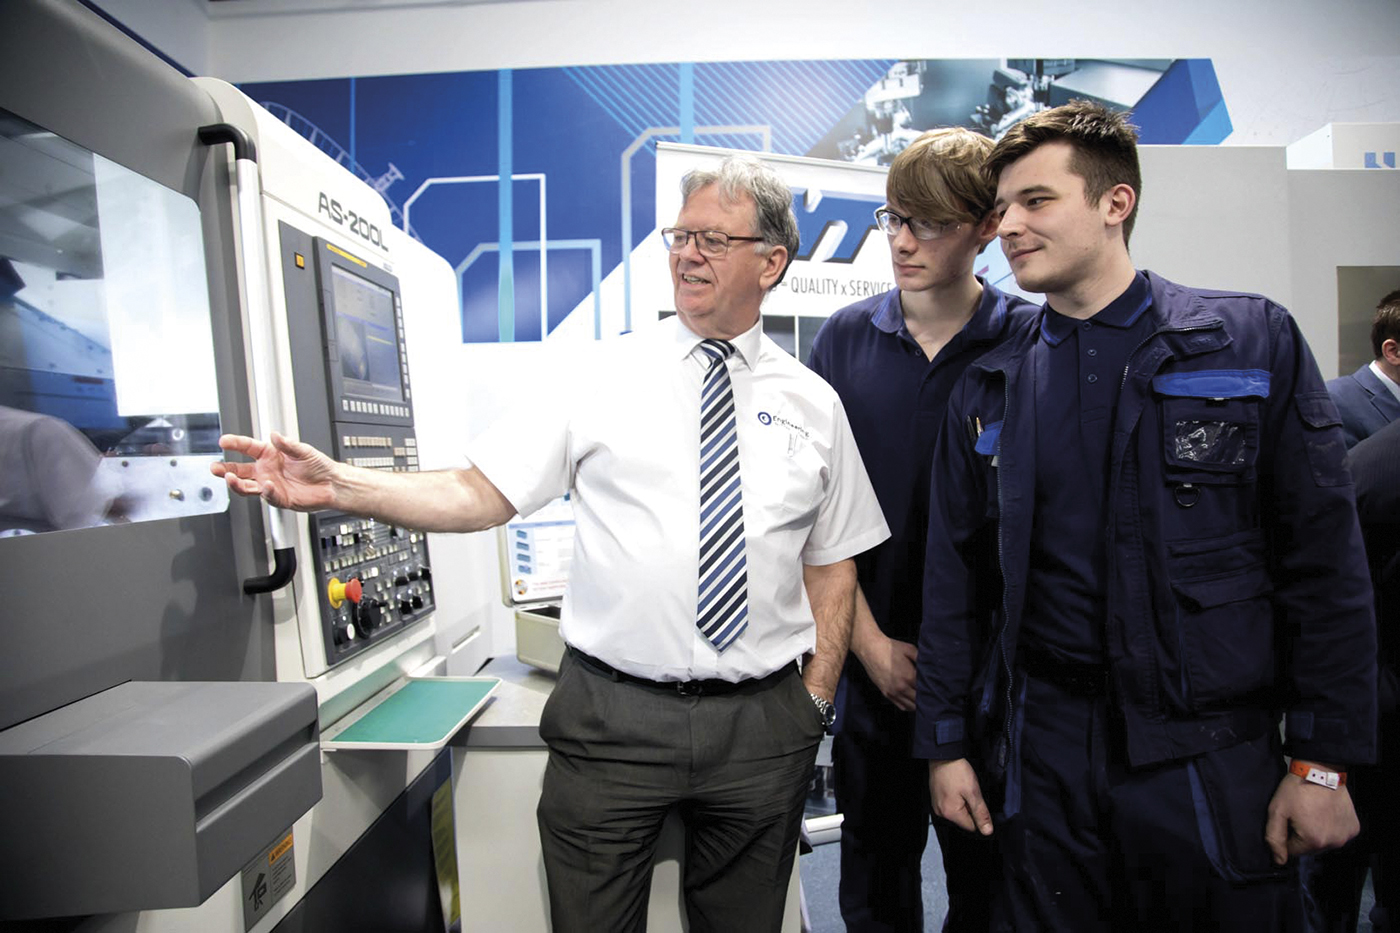 students with teacher looking at technical equipment